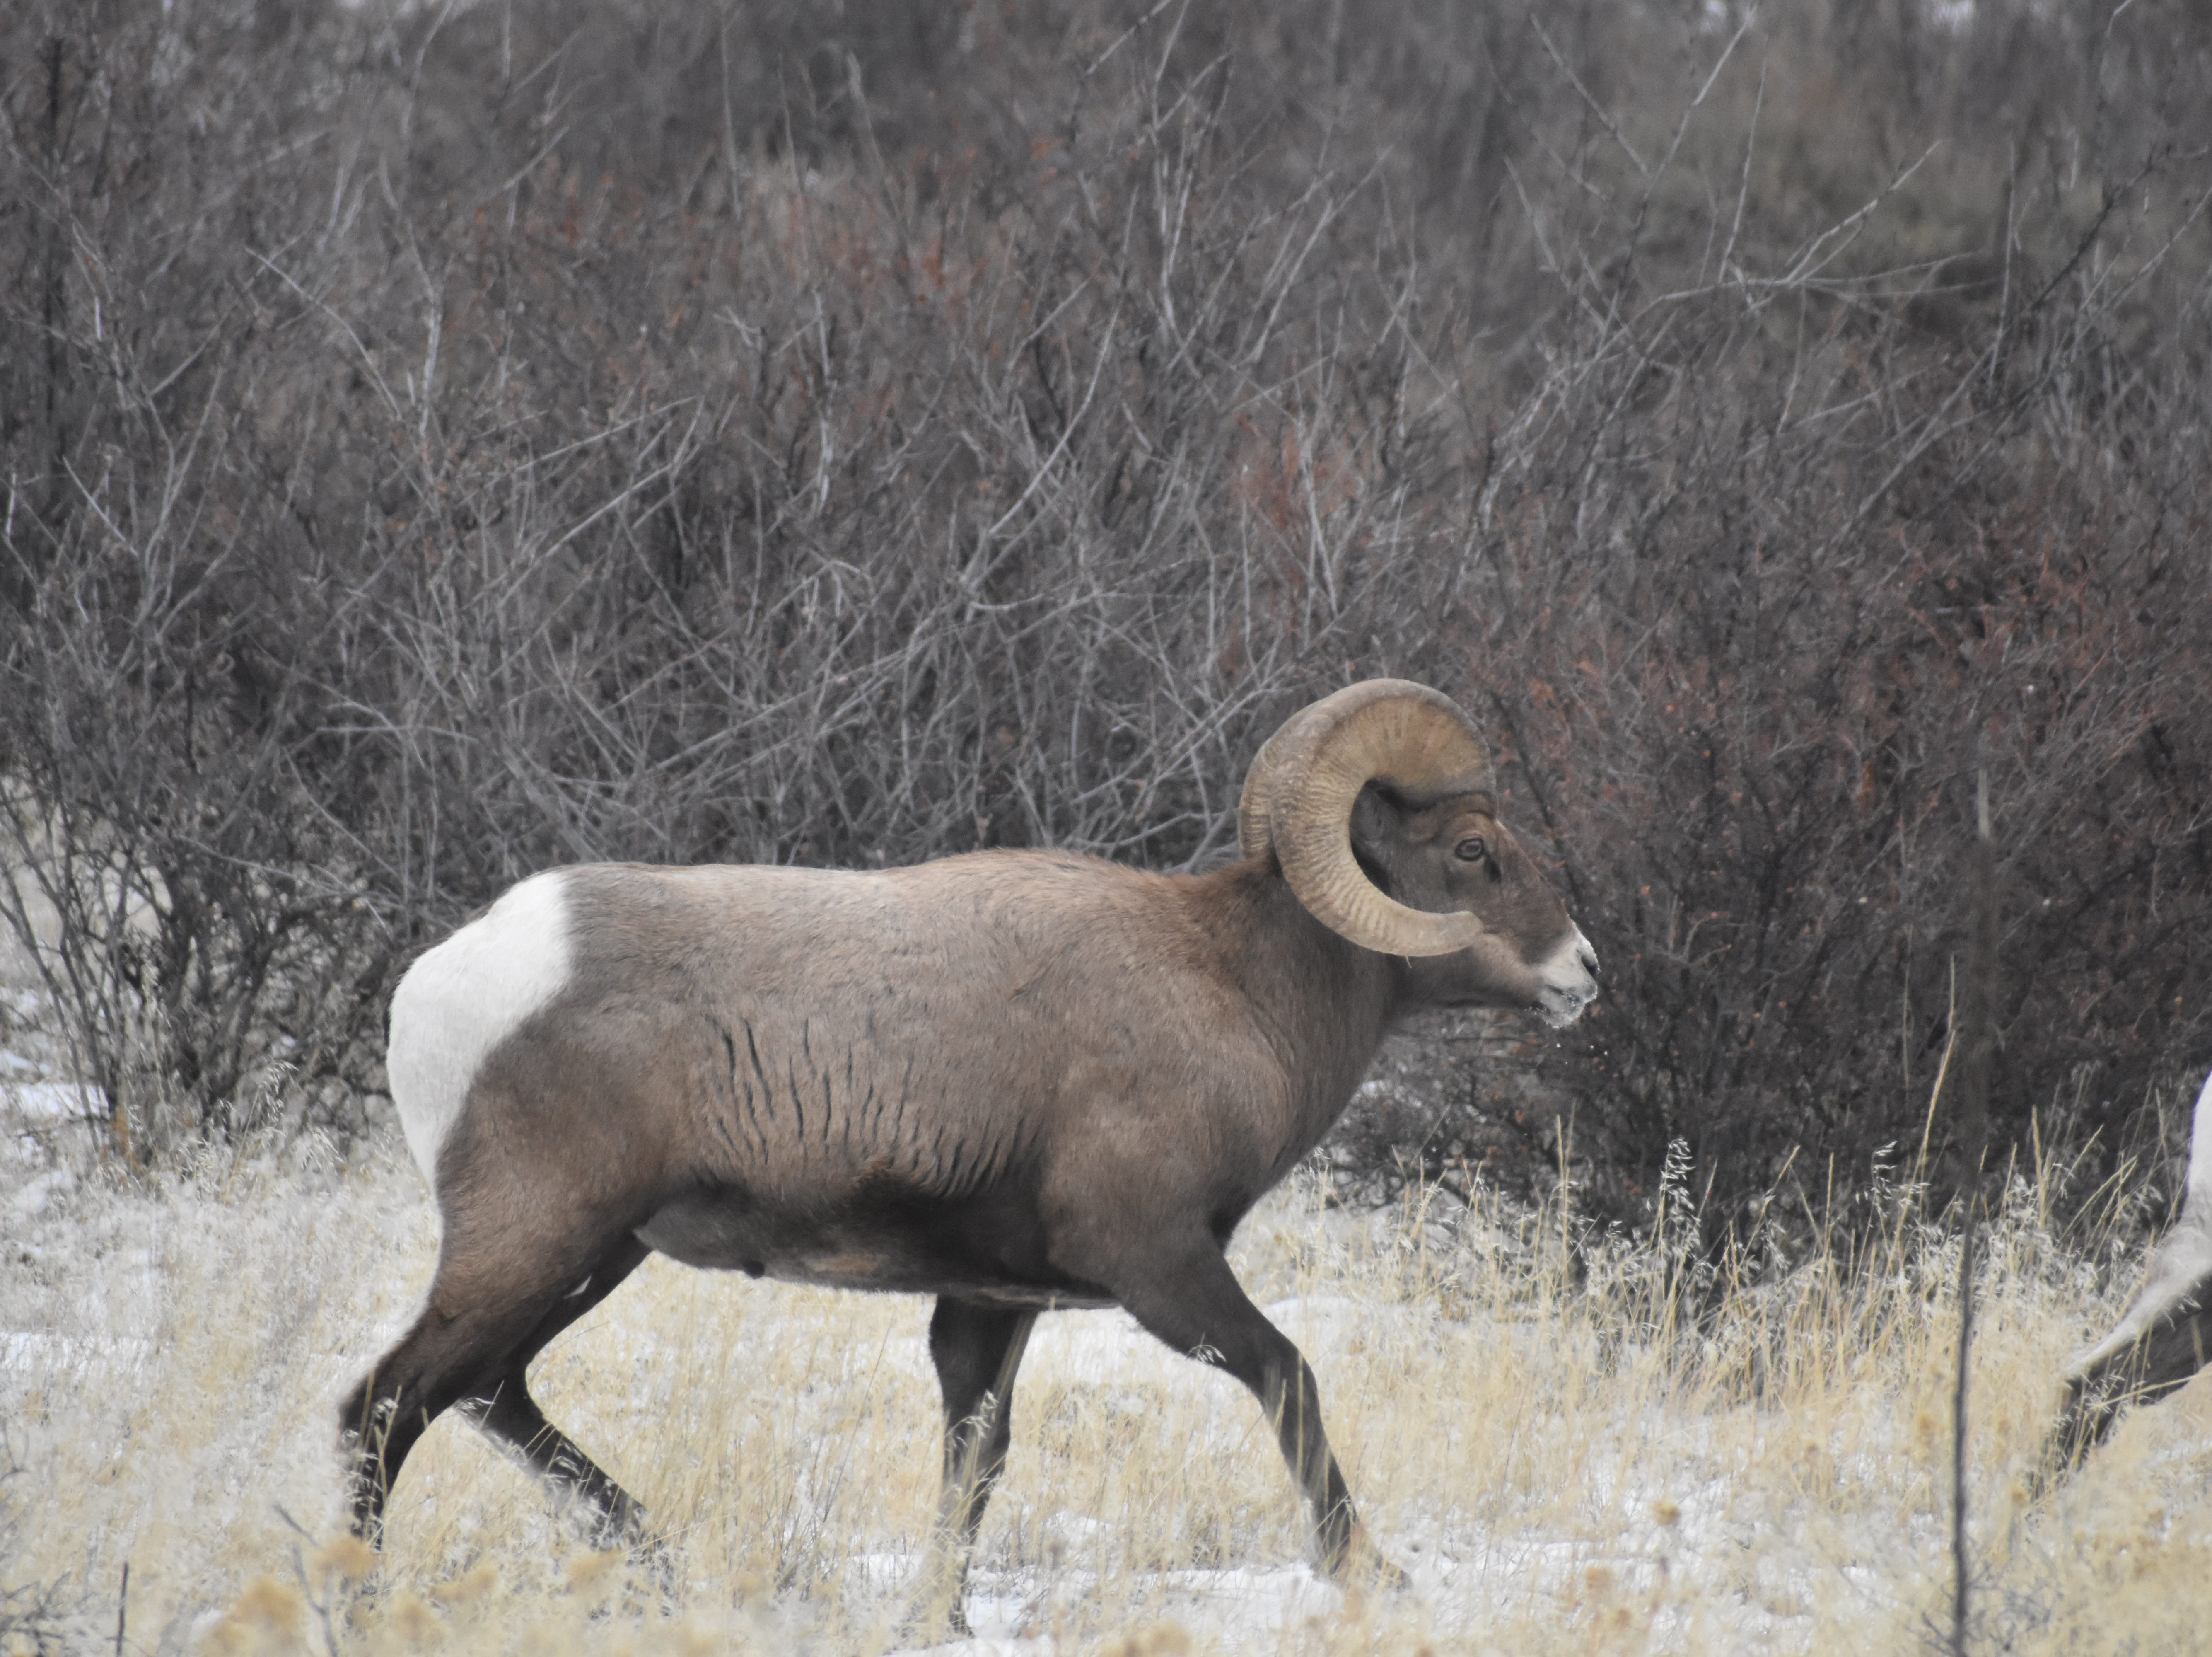 Bighorn sheep horns can weigh up to 40 pounds.